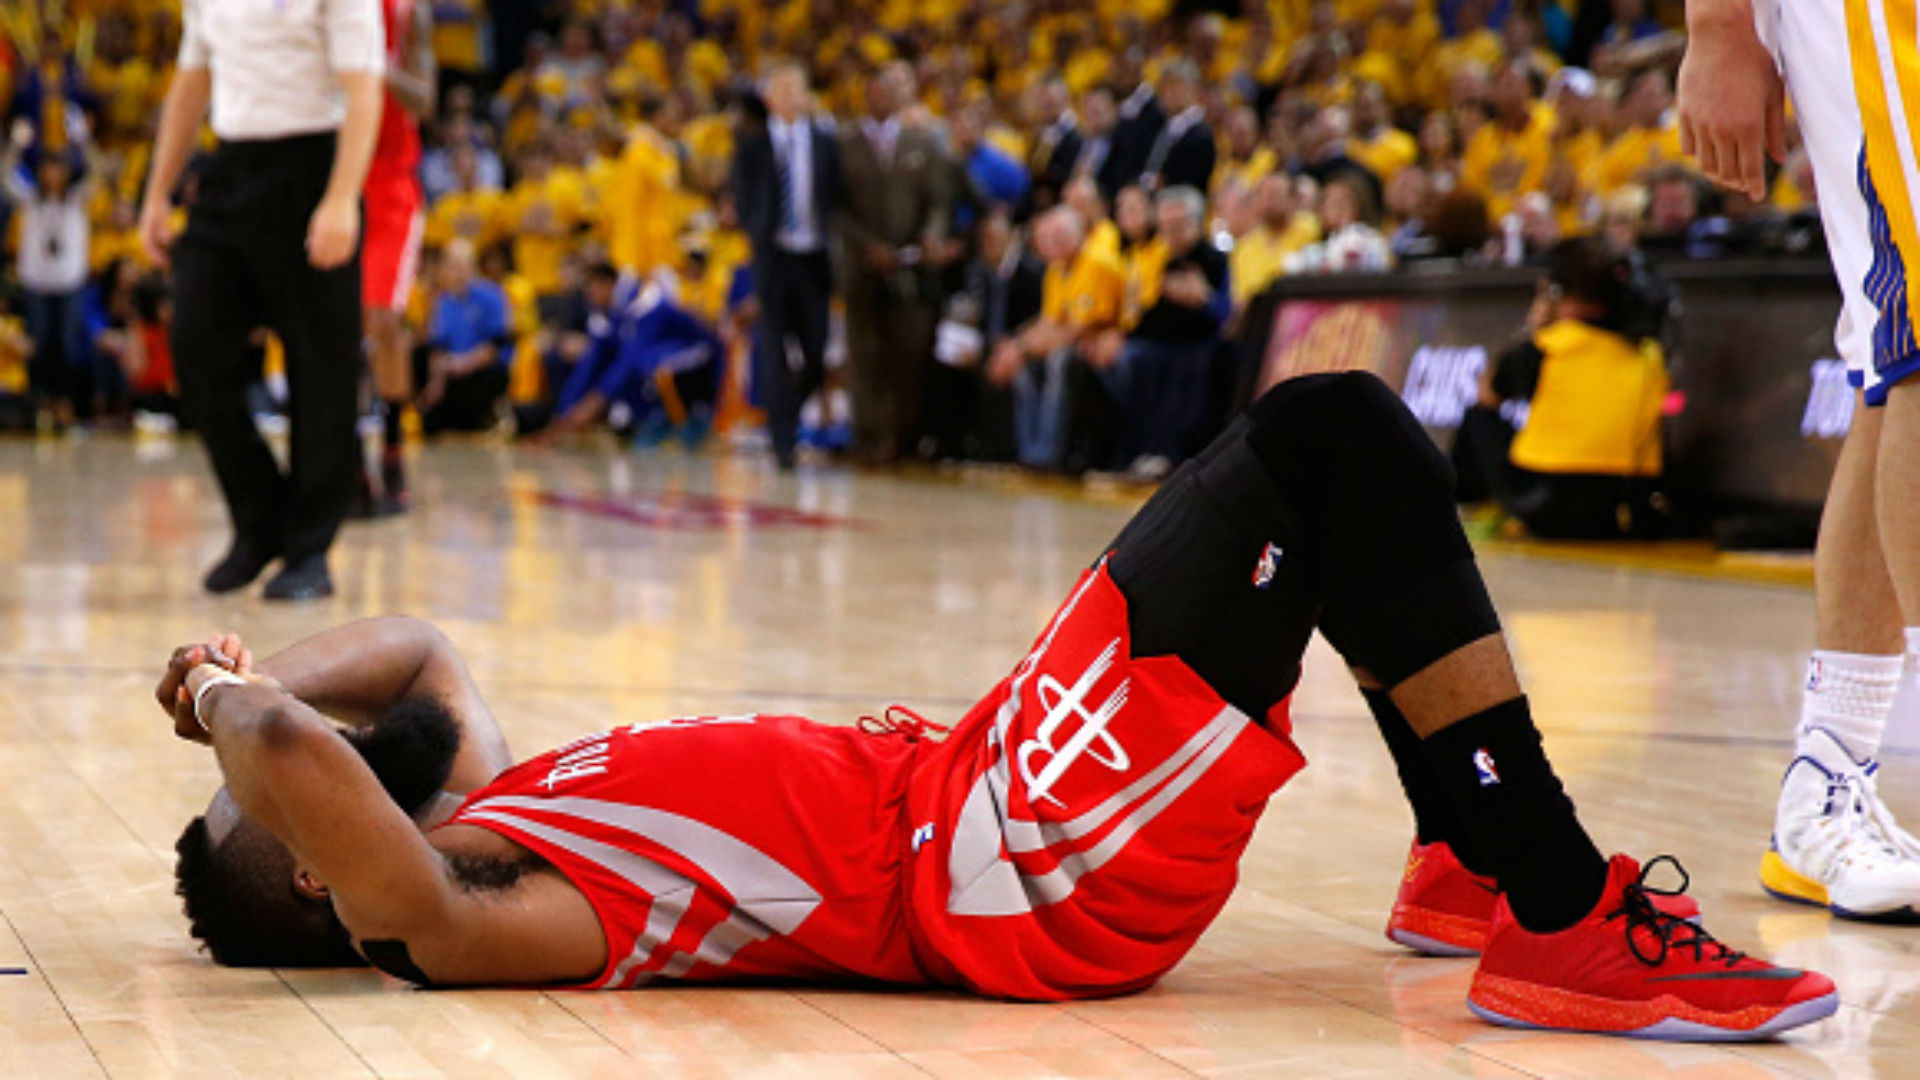 Basketball Twitter didn't approve of James Harden's decision to pass to Dwight Howard